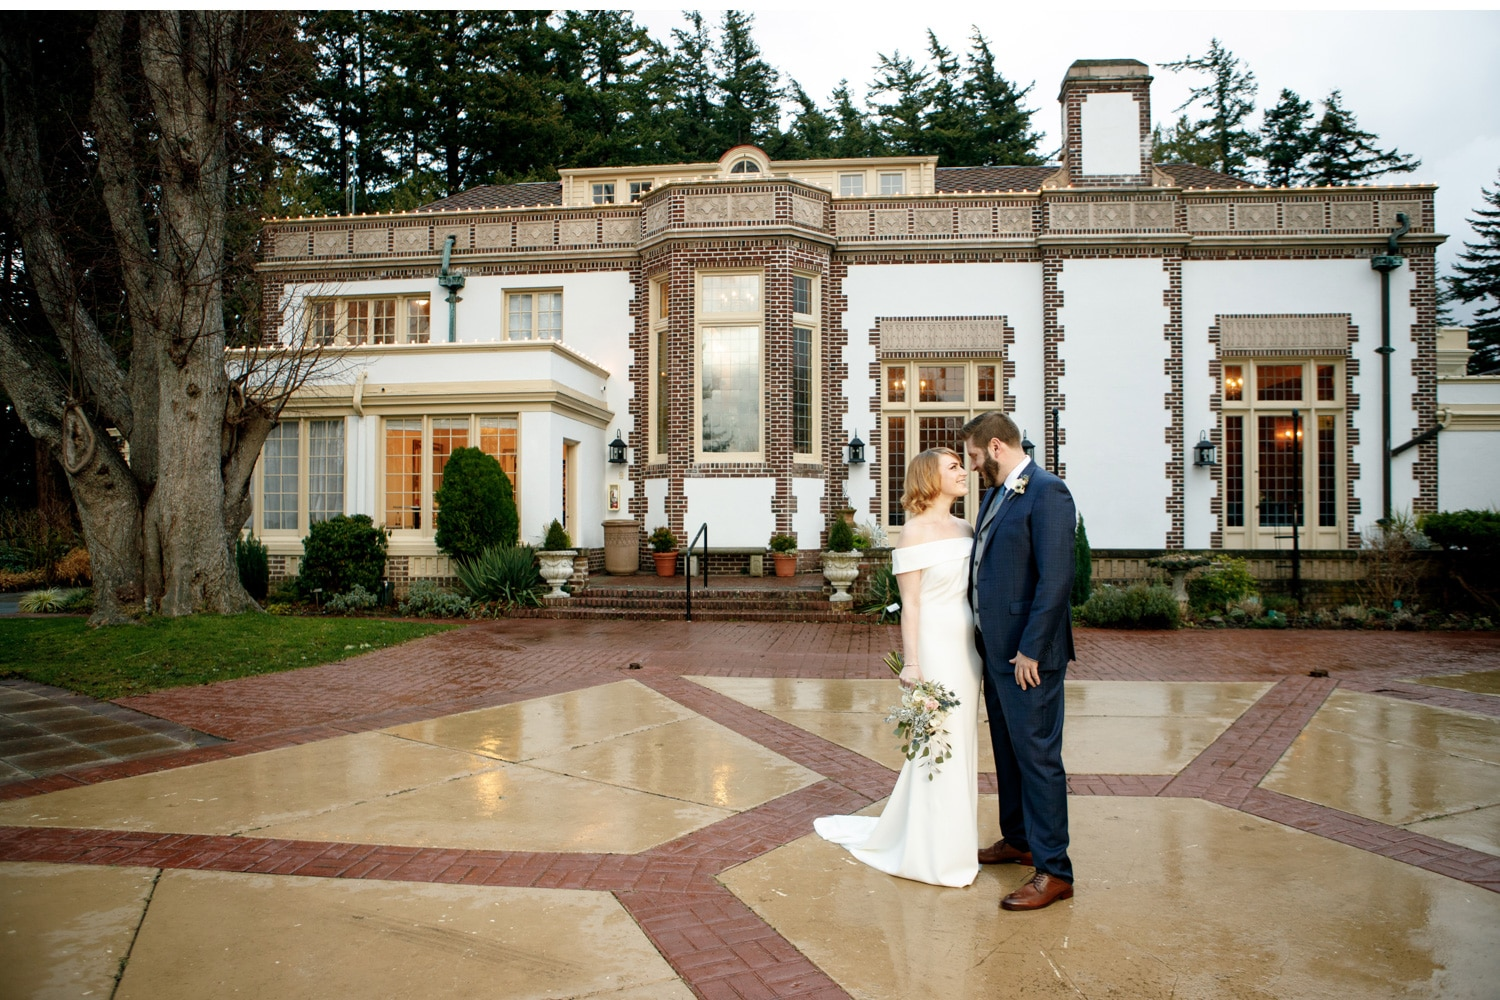 lairmont Manor wedding venue inspiration photo for bellingham photographer